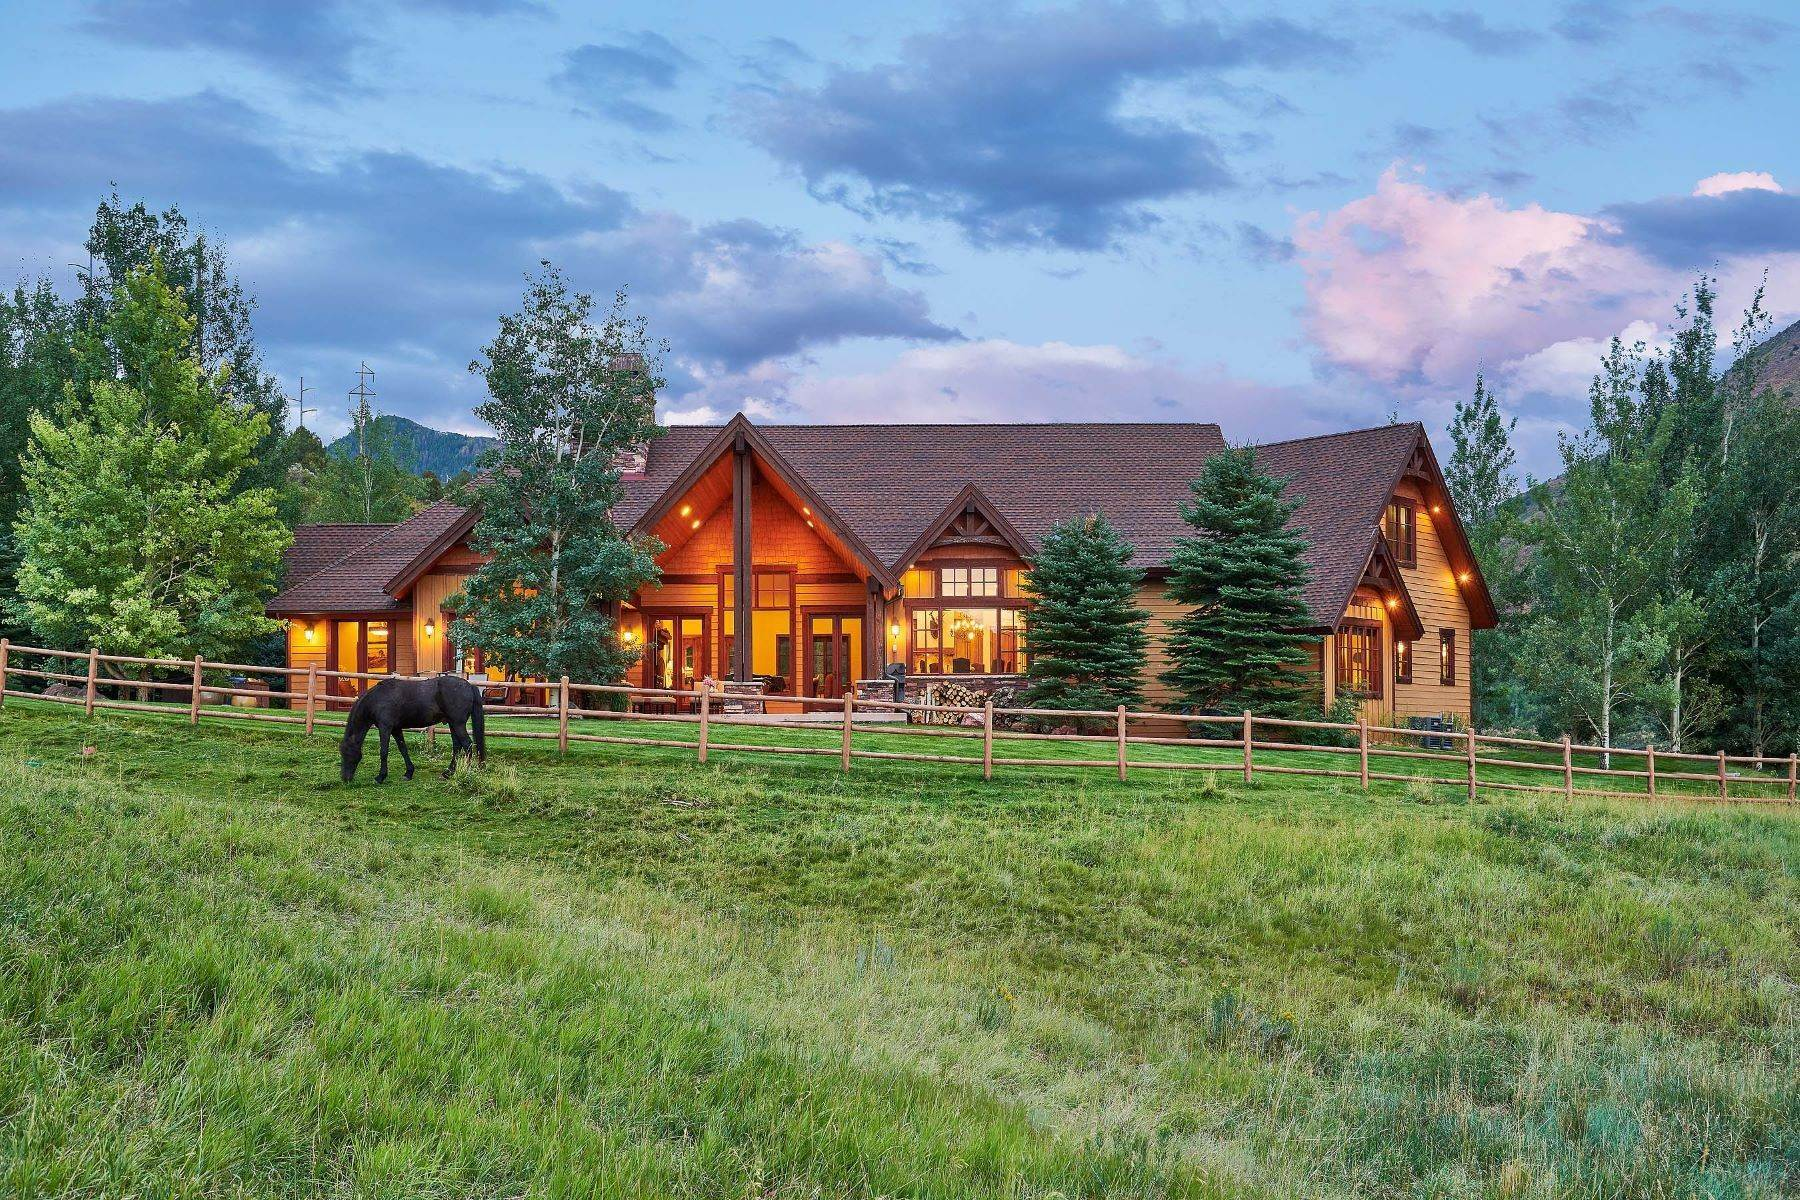 Farm and Ranch Properties for Sale at N. River Road Ranch 102 N. River Road Snowmass, Colorado 81654 United States